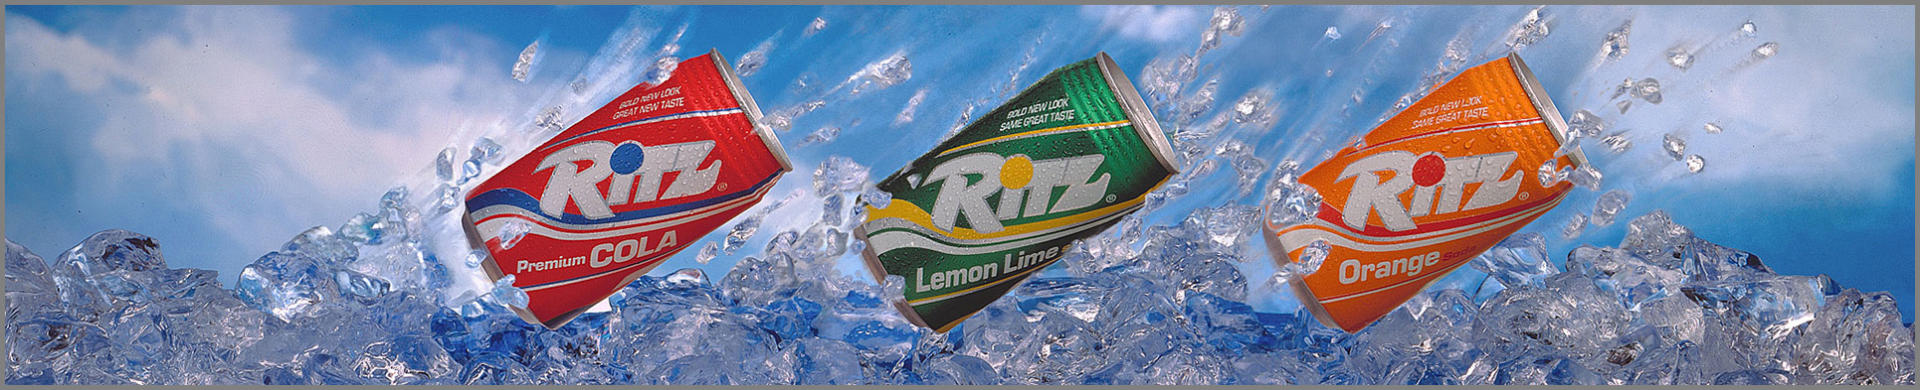 Image for Ritz Beverages Tractor-Trailers